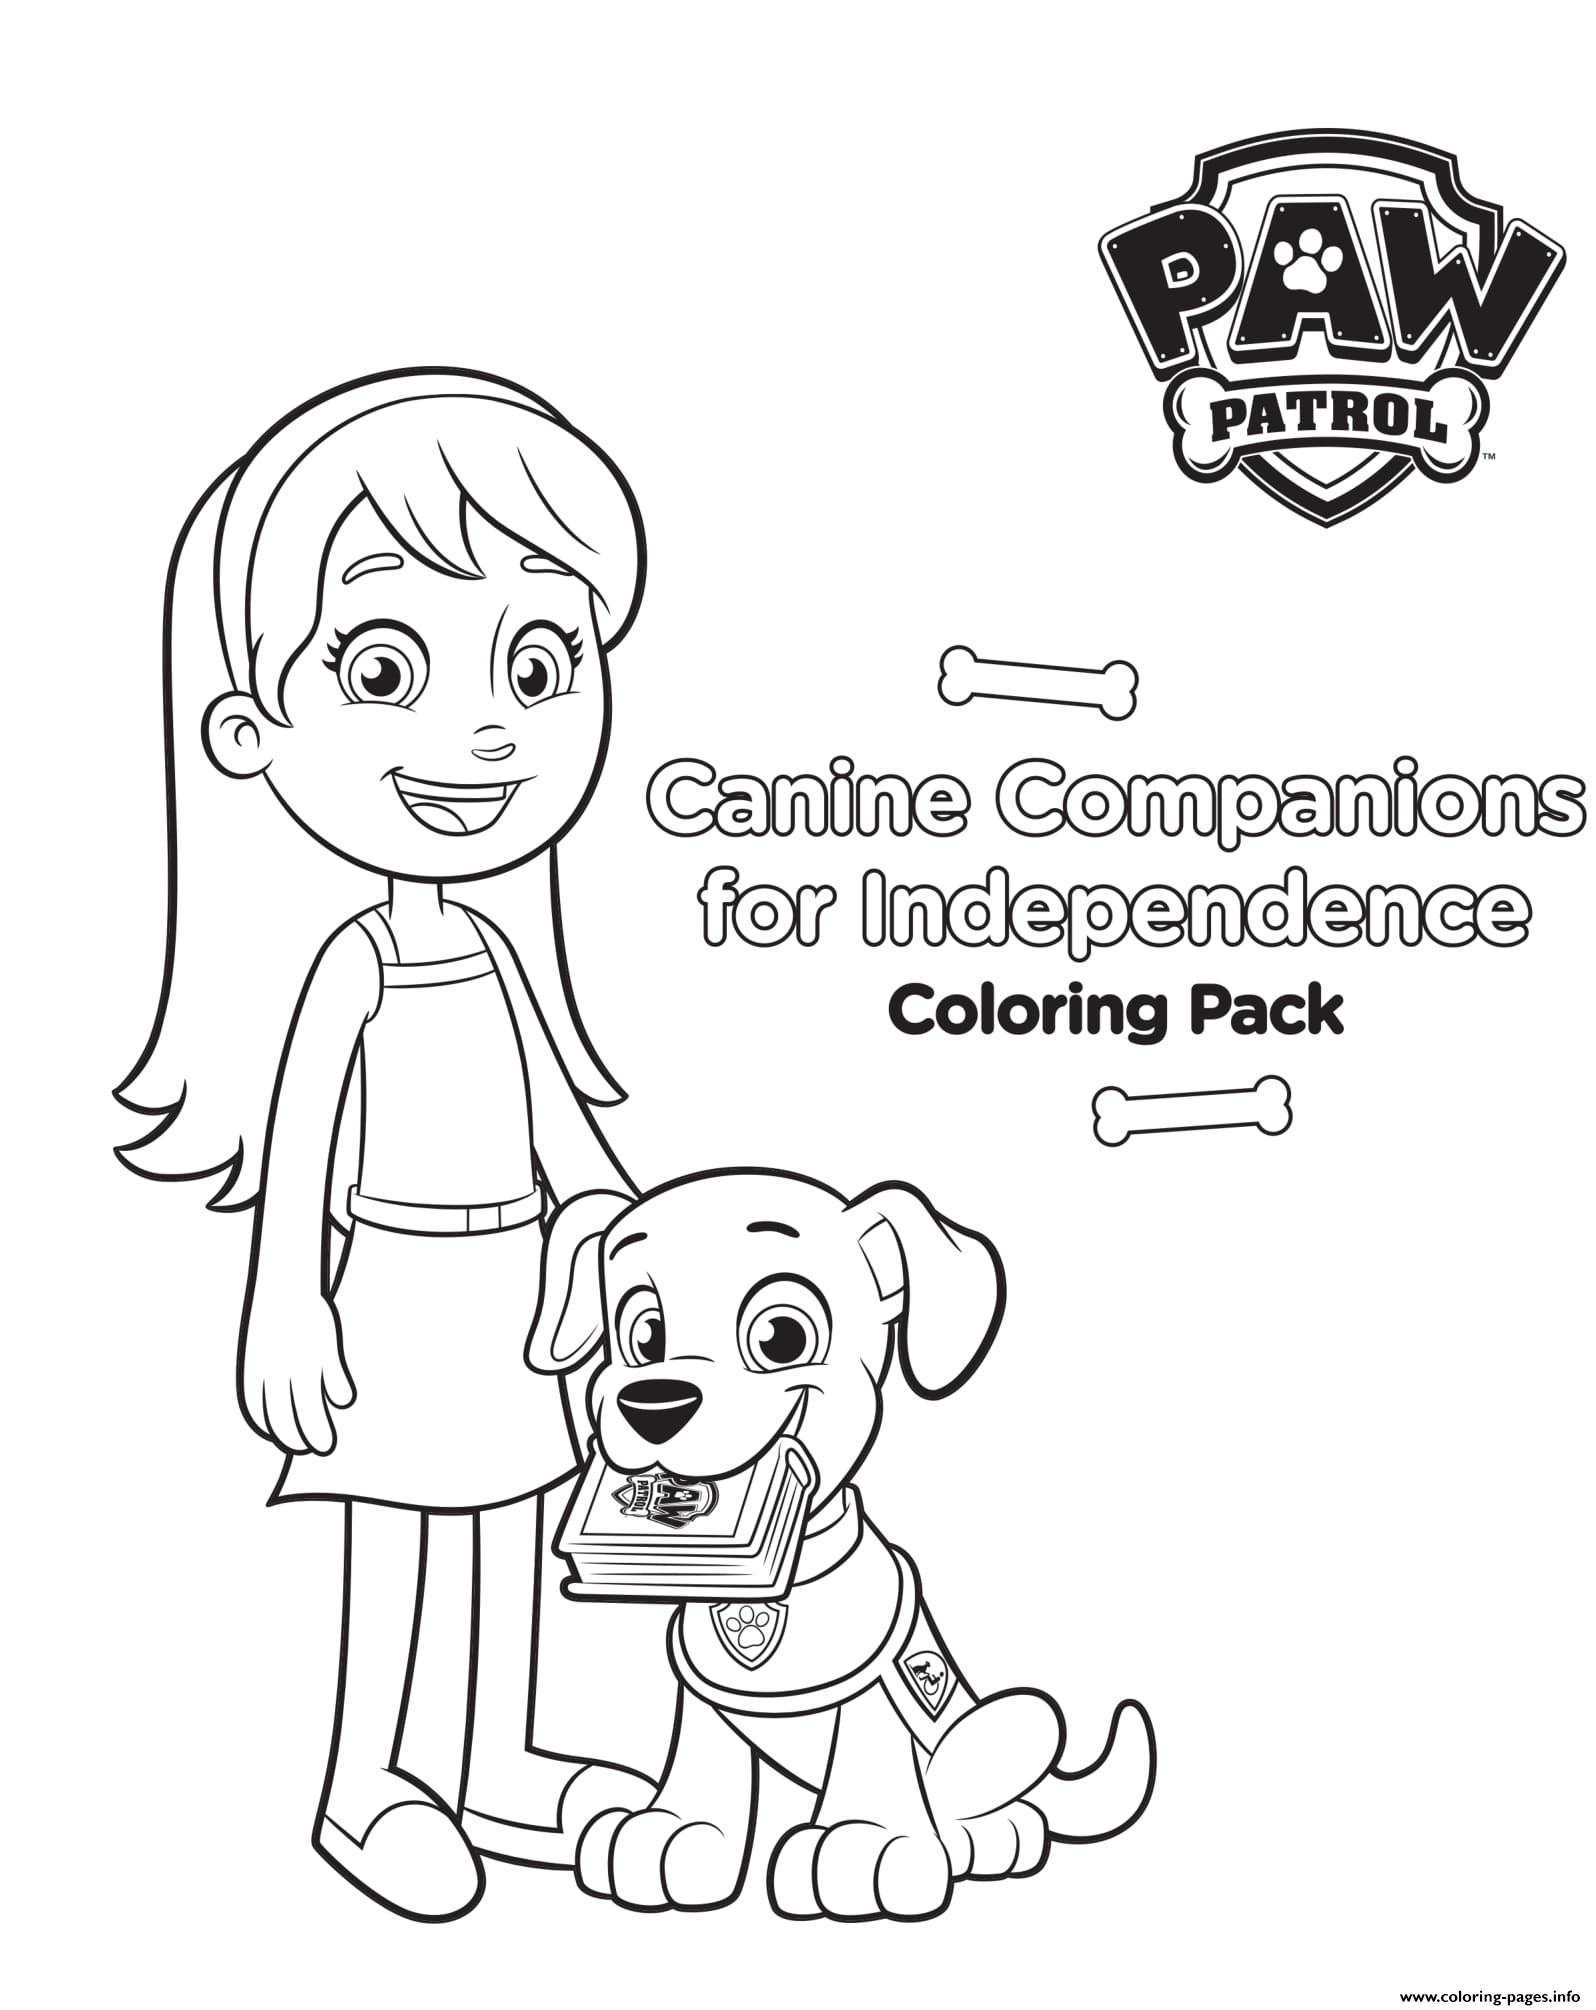 Canine Companions For Independence coloring pages